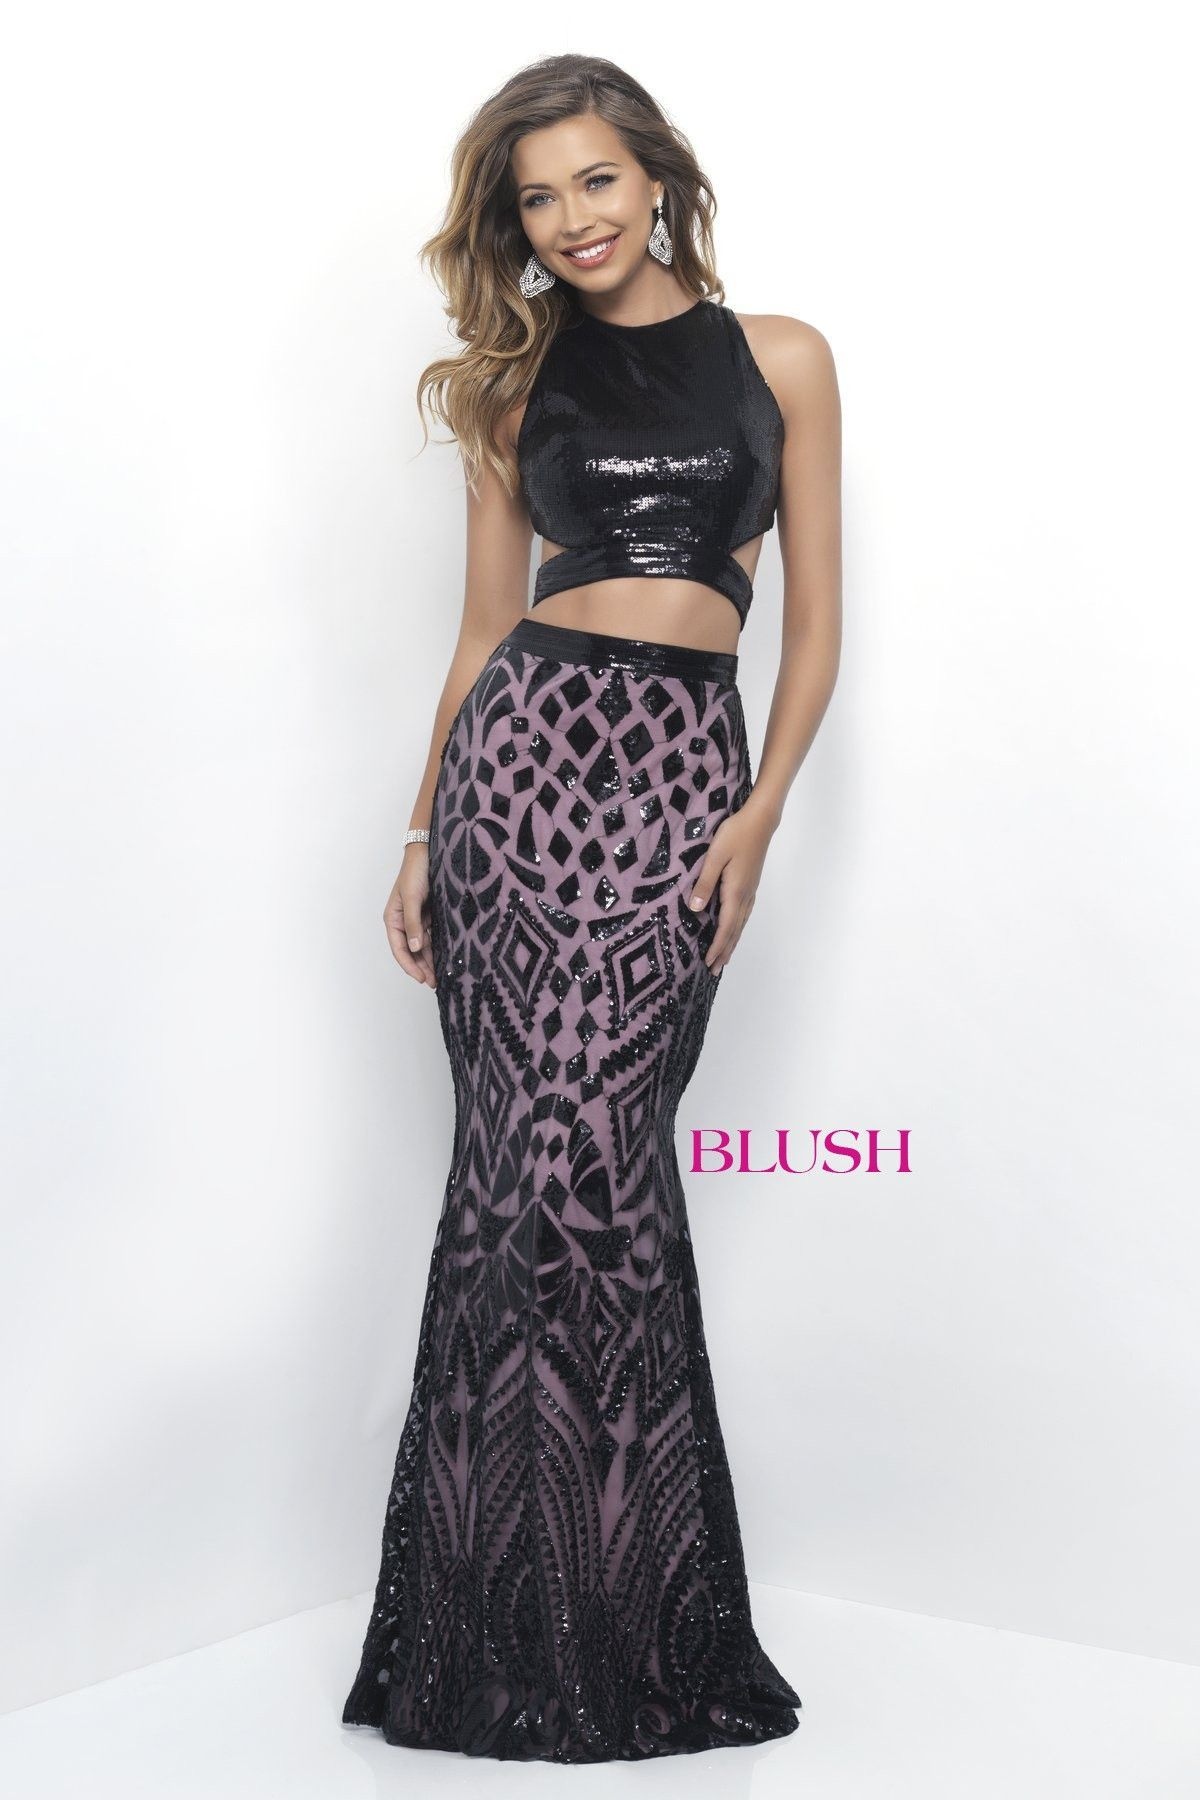 Blush prom black pink sequin two piece prom dress gimme a